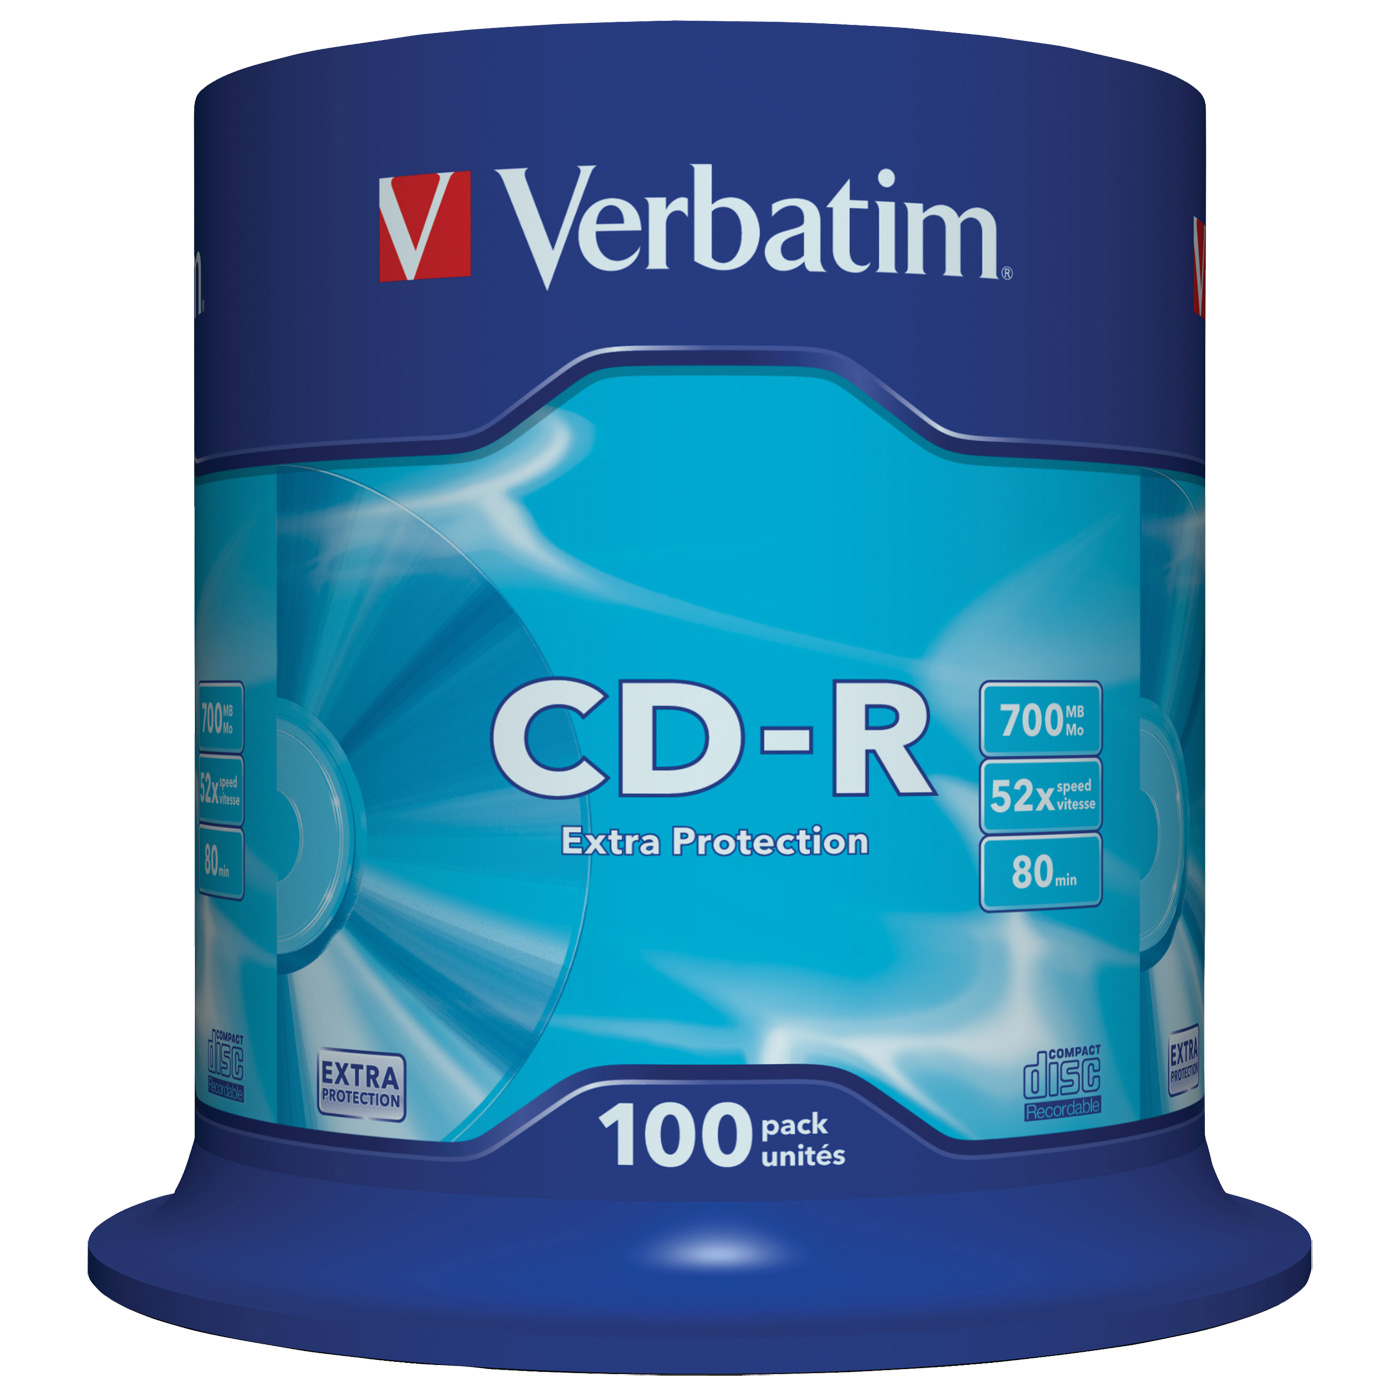 CD Verbatim CD-R 700 Mo 52x (spindle de 100) Verbatim CD-R 700 Mo certifié 52x (pack de 100, spindle)